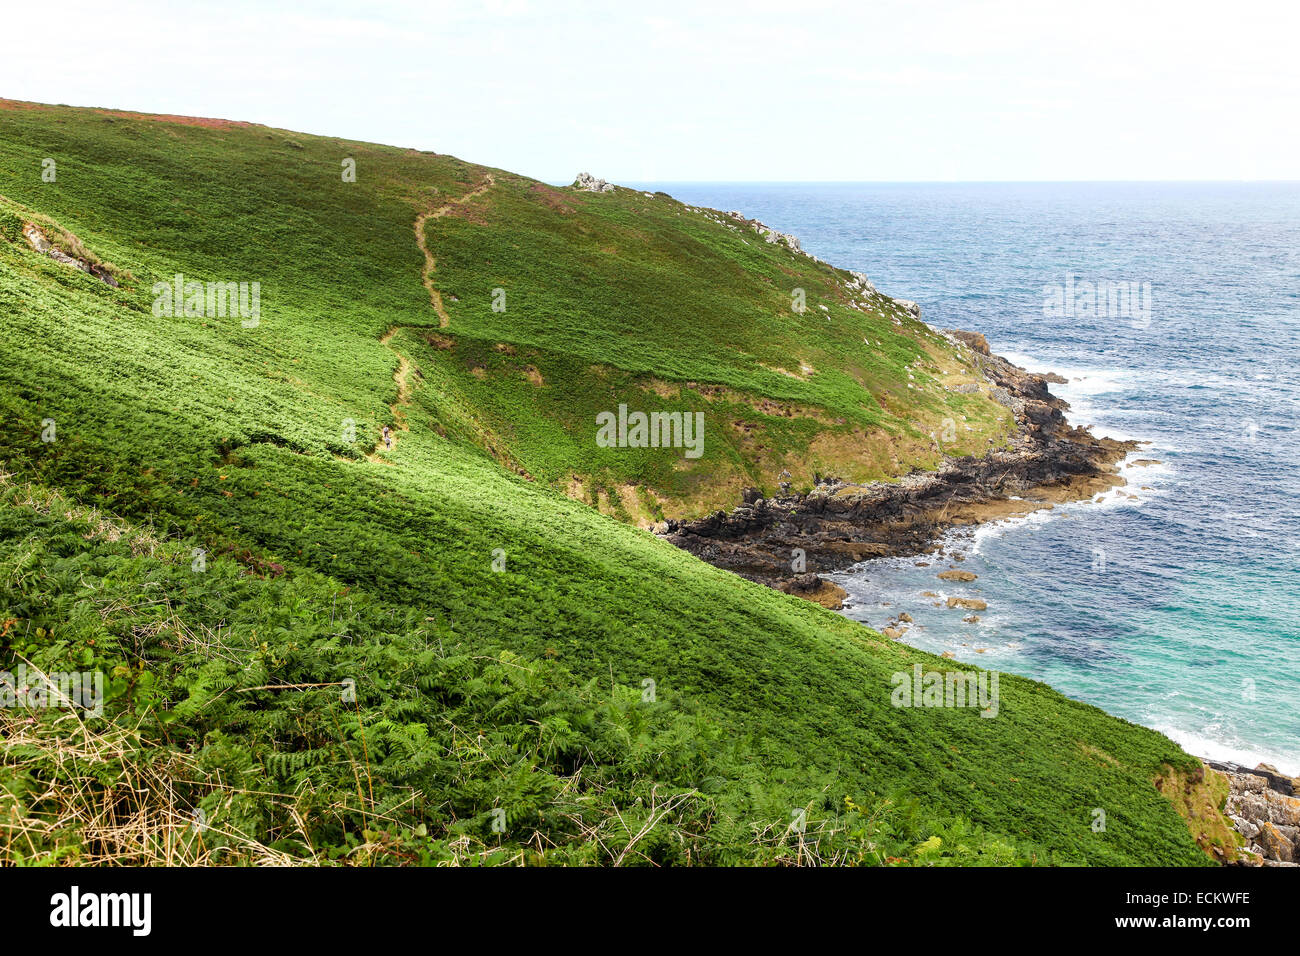 Porthzennor cove Wicca pool Tremedda Cliff and the South west Coast path Zennor head Cornwall England UK Stock Photo